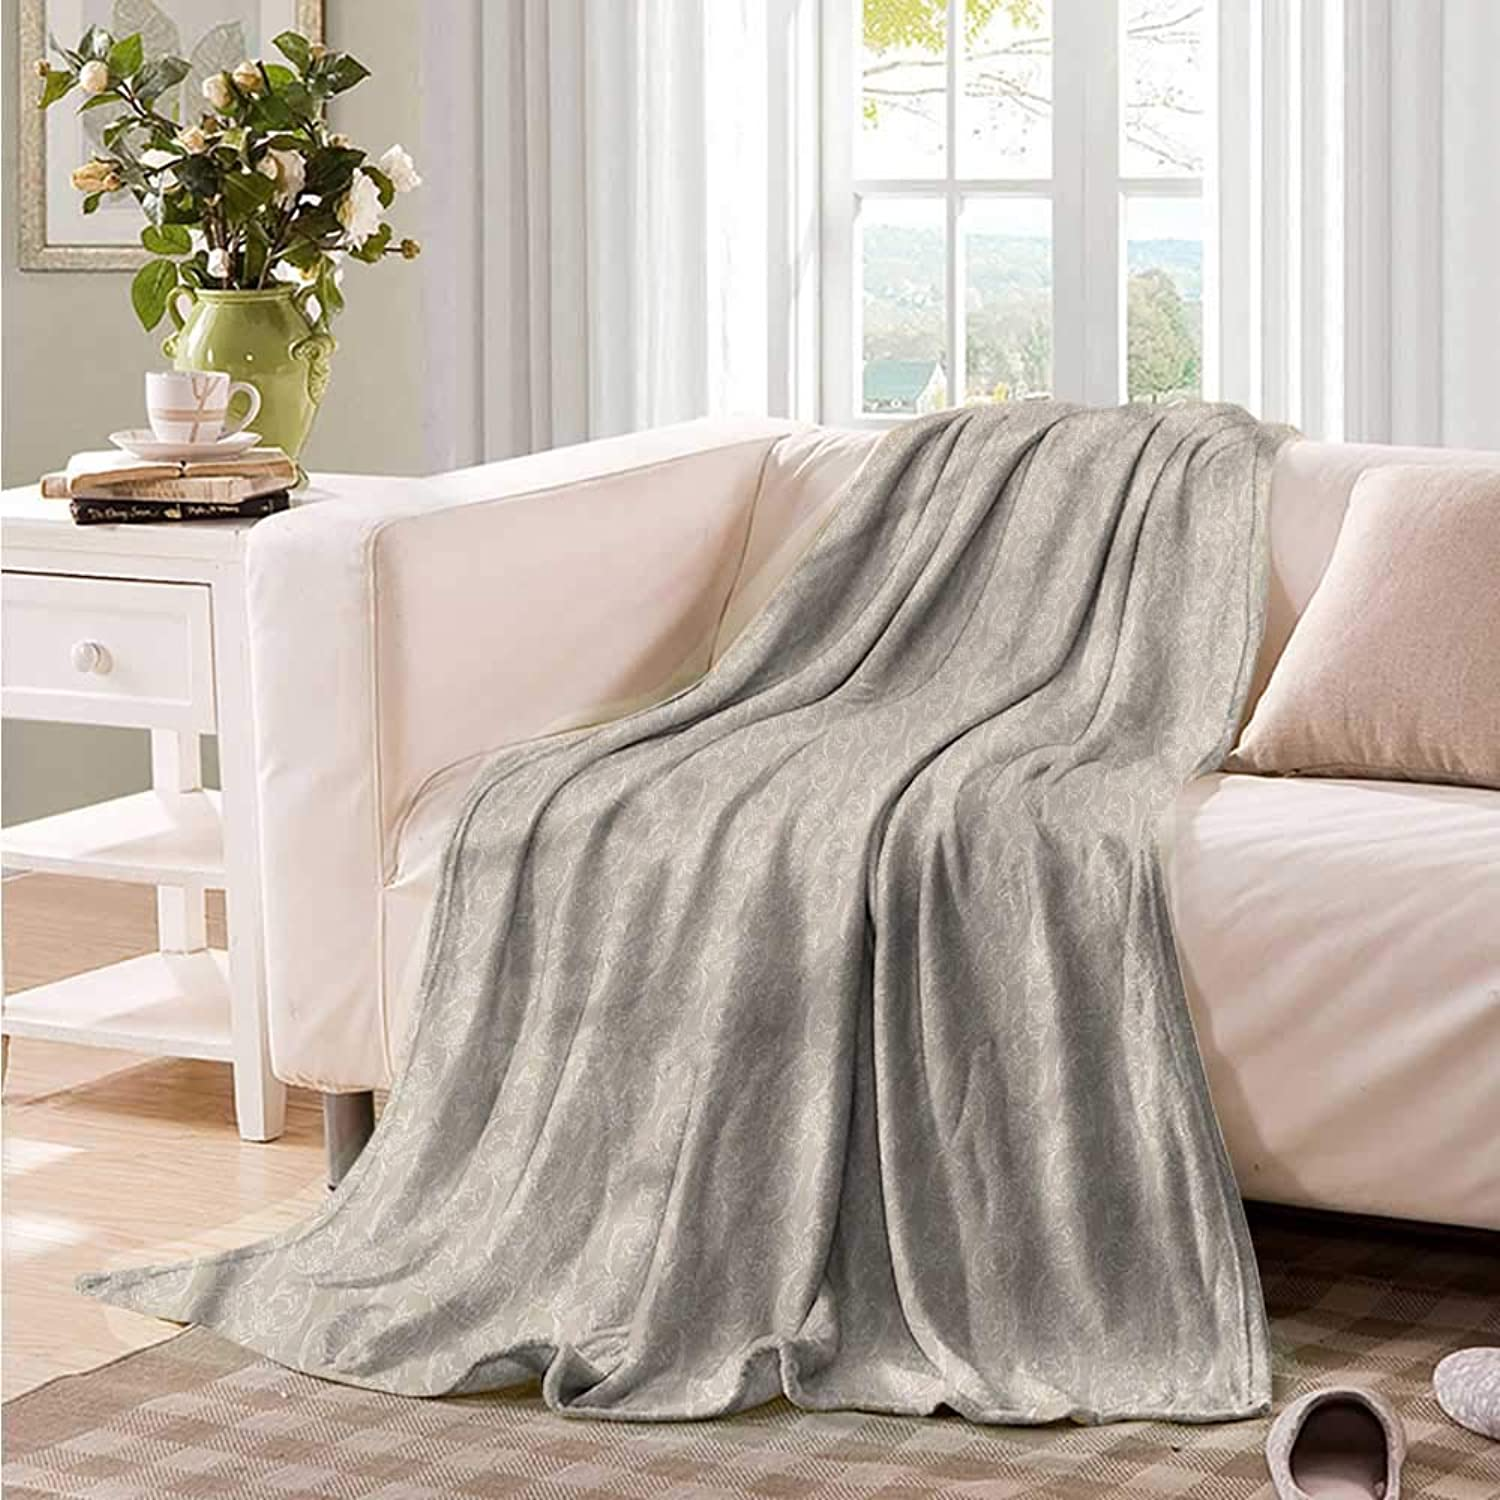 Oncegod Flannel Blanket Taupe and White Outline Flowers Camping Throw,Office wrap 60  W x 51  L